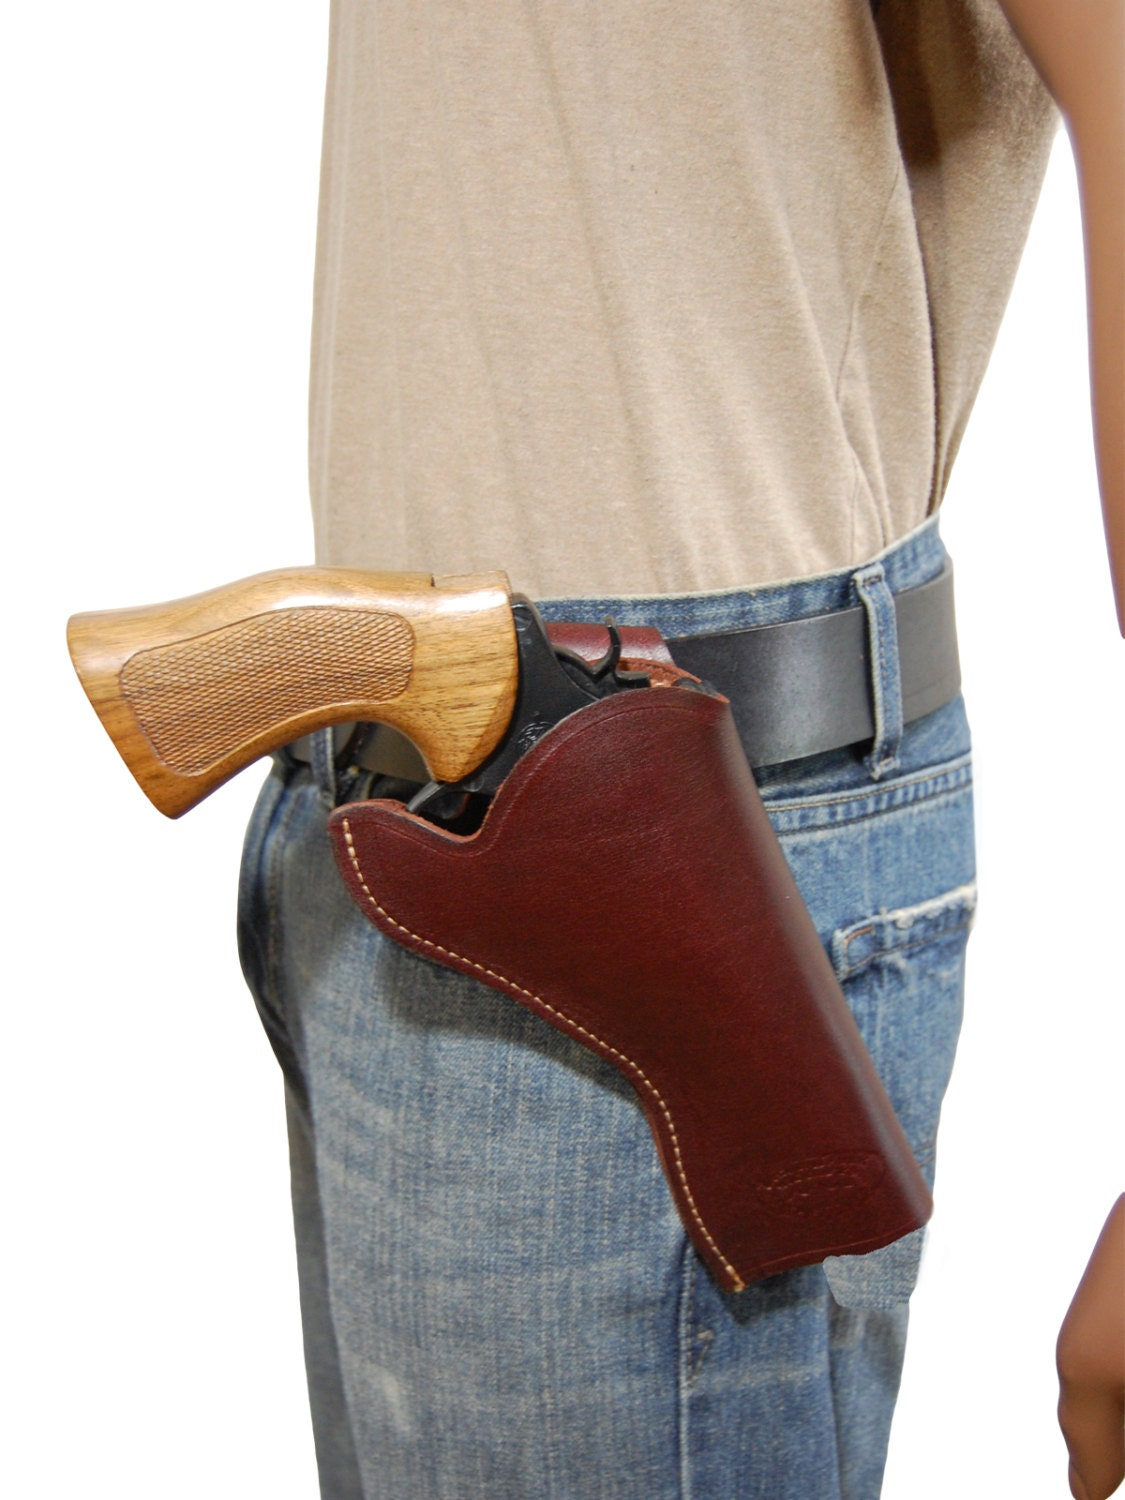 New burgundy leather cross draw gun holster for by barsonyholsters